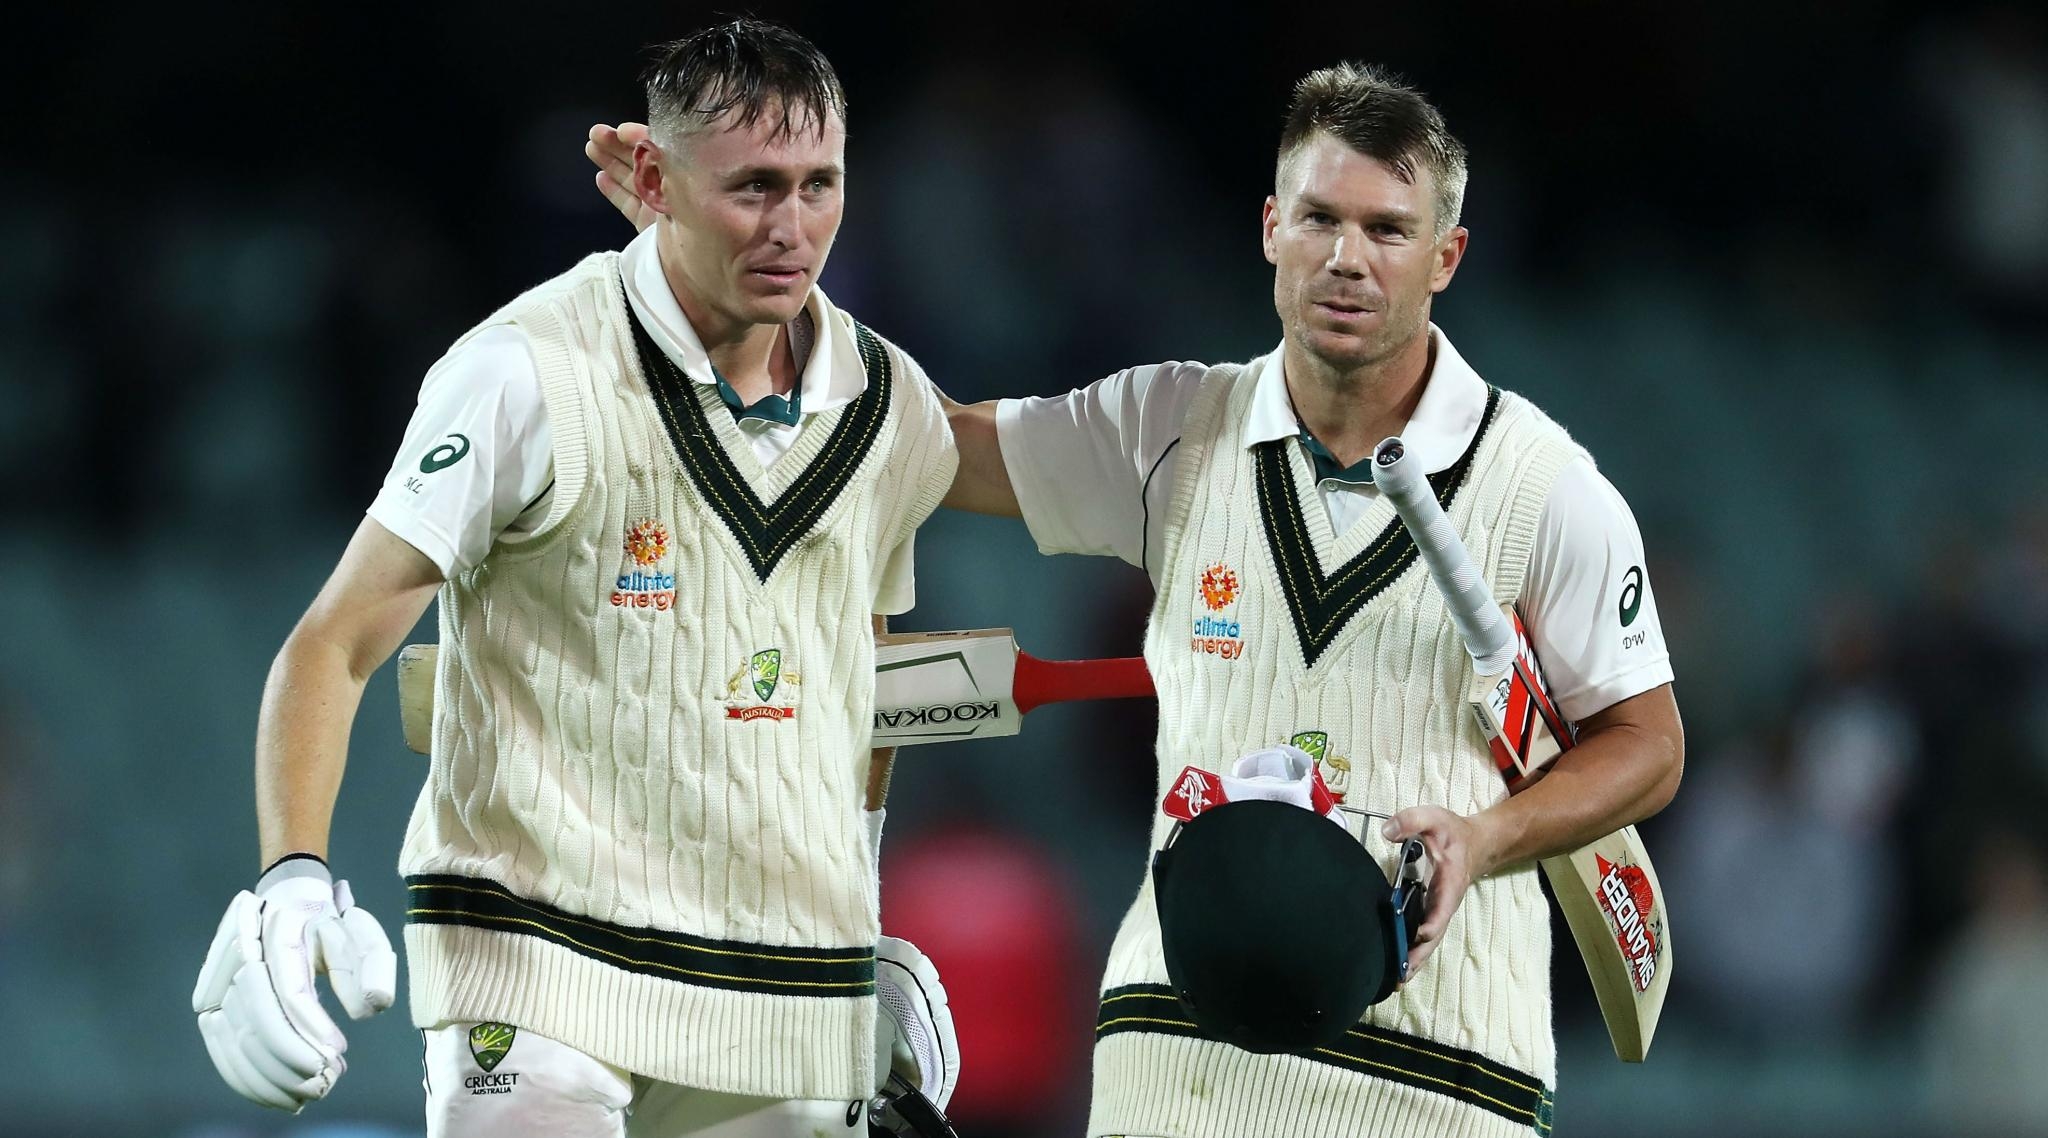 Australia vs Pakistan, Day-Night Test 2019: David Warner, Marnus Labuschagne Pile Agony on Pak Bowlers